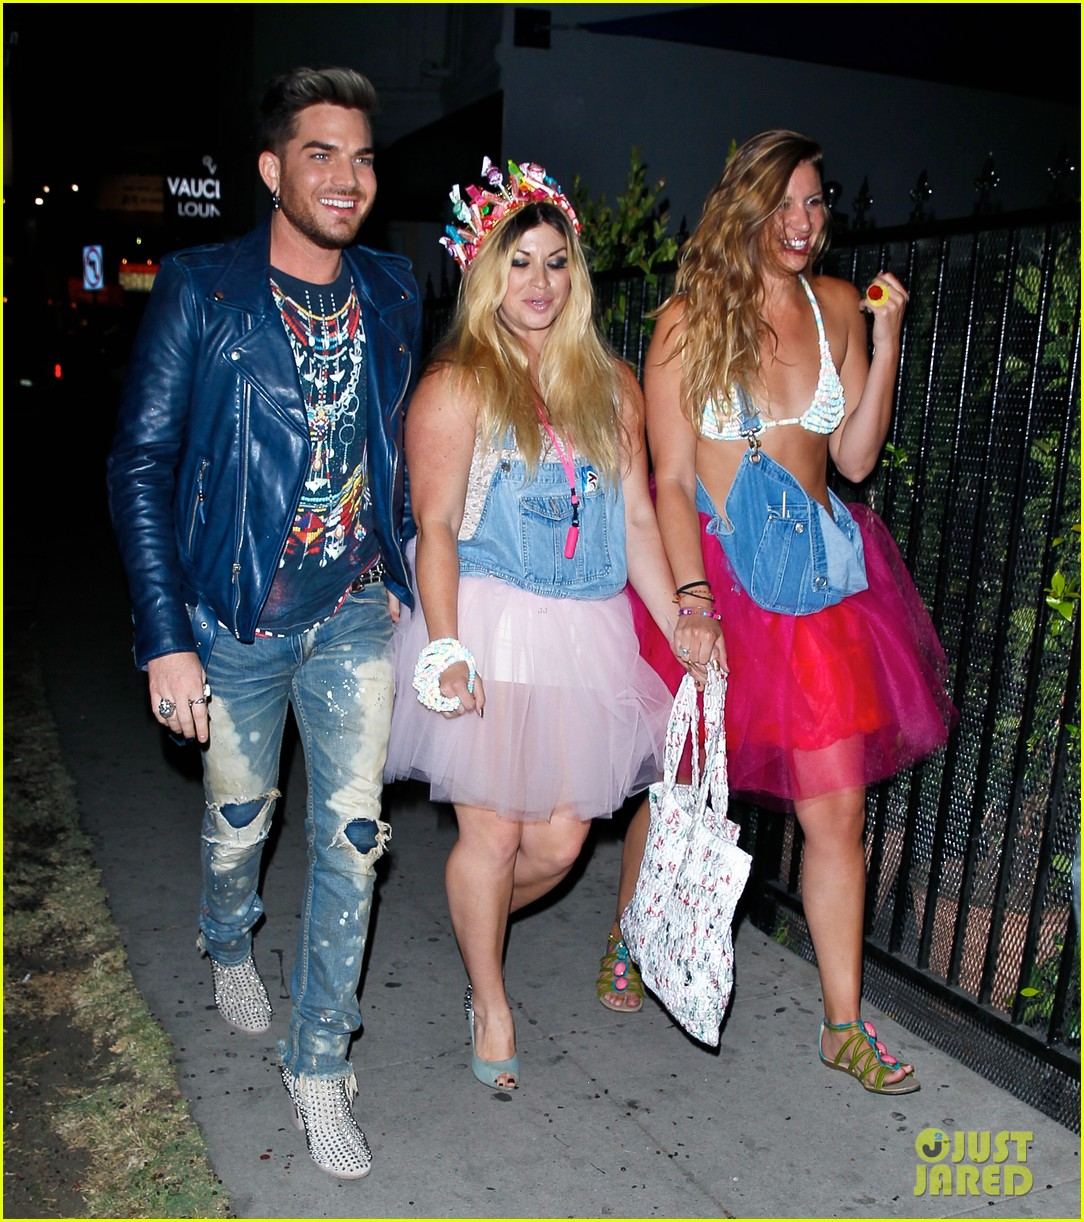 adam lambert looks like hes having a really fun night with friends 03